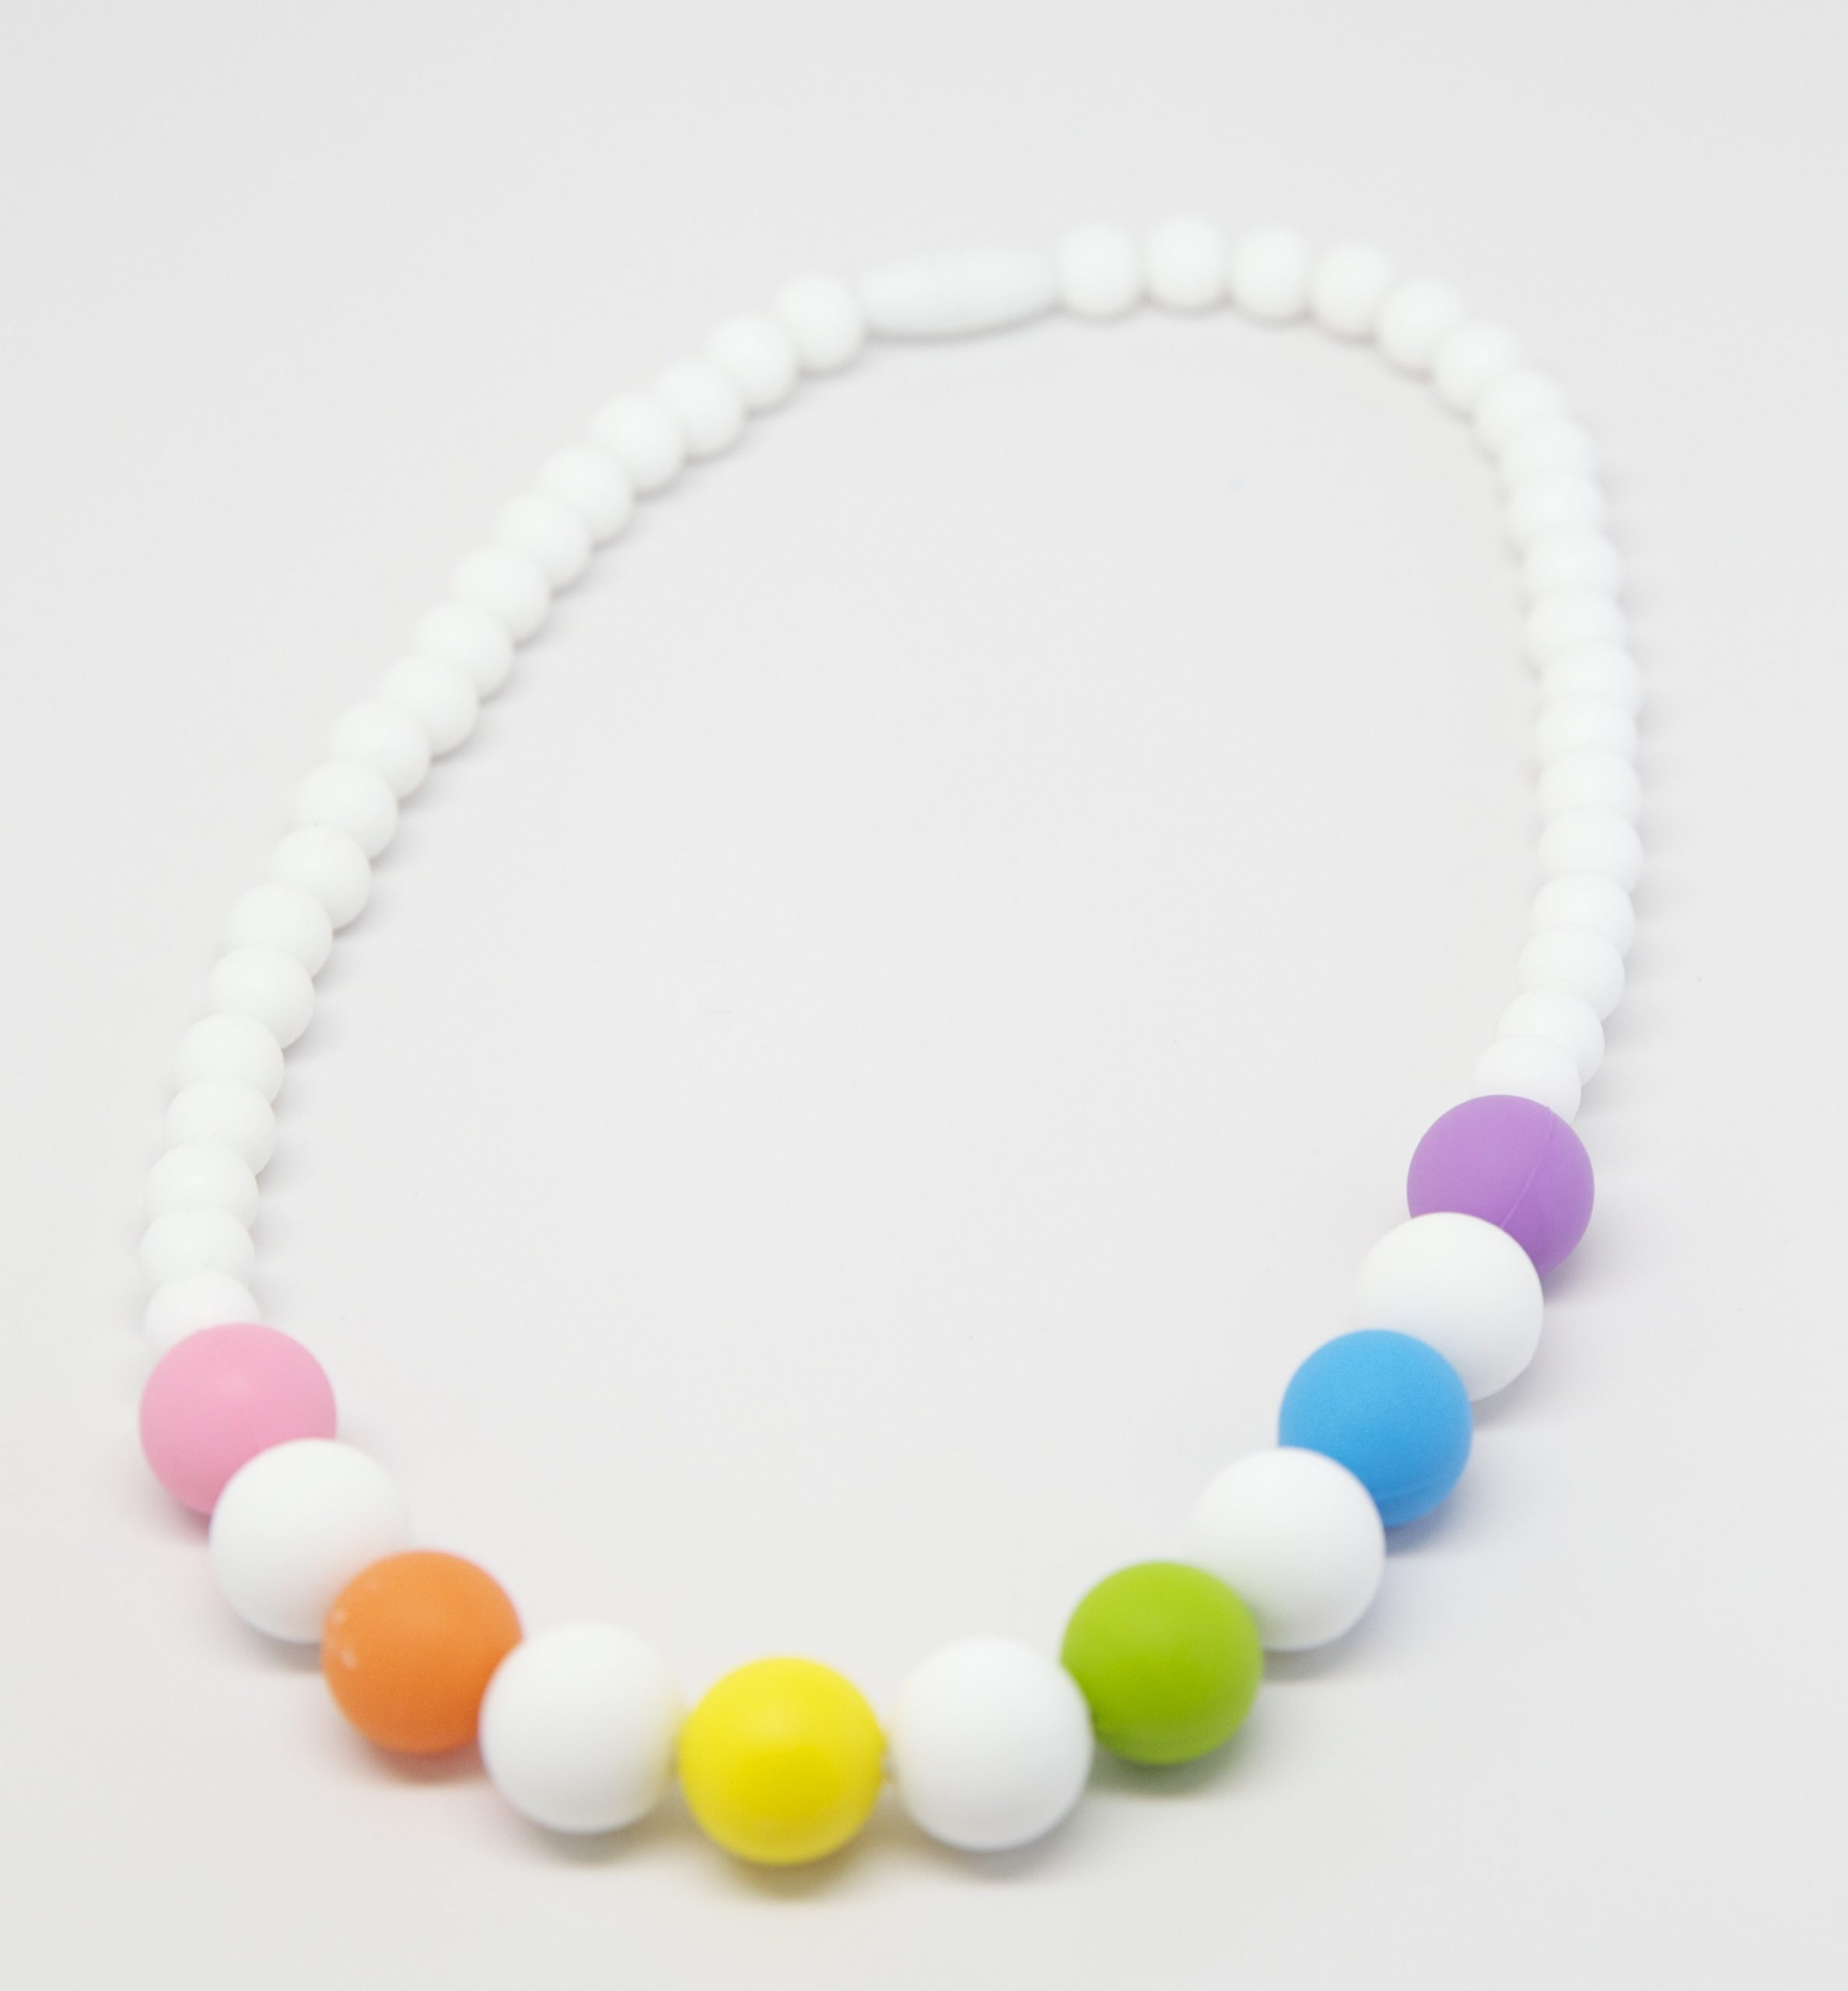 Make up to 5 necklaces Pink Rainbow Silicone Deluxe Necklace Kit Food Grade Silicone Beads DIY Silicone Teething Necklace Kit